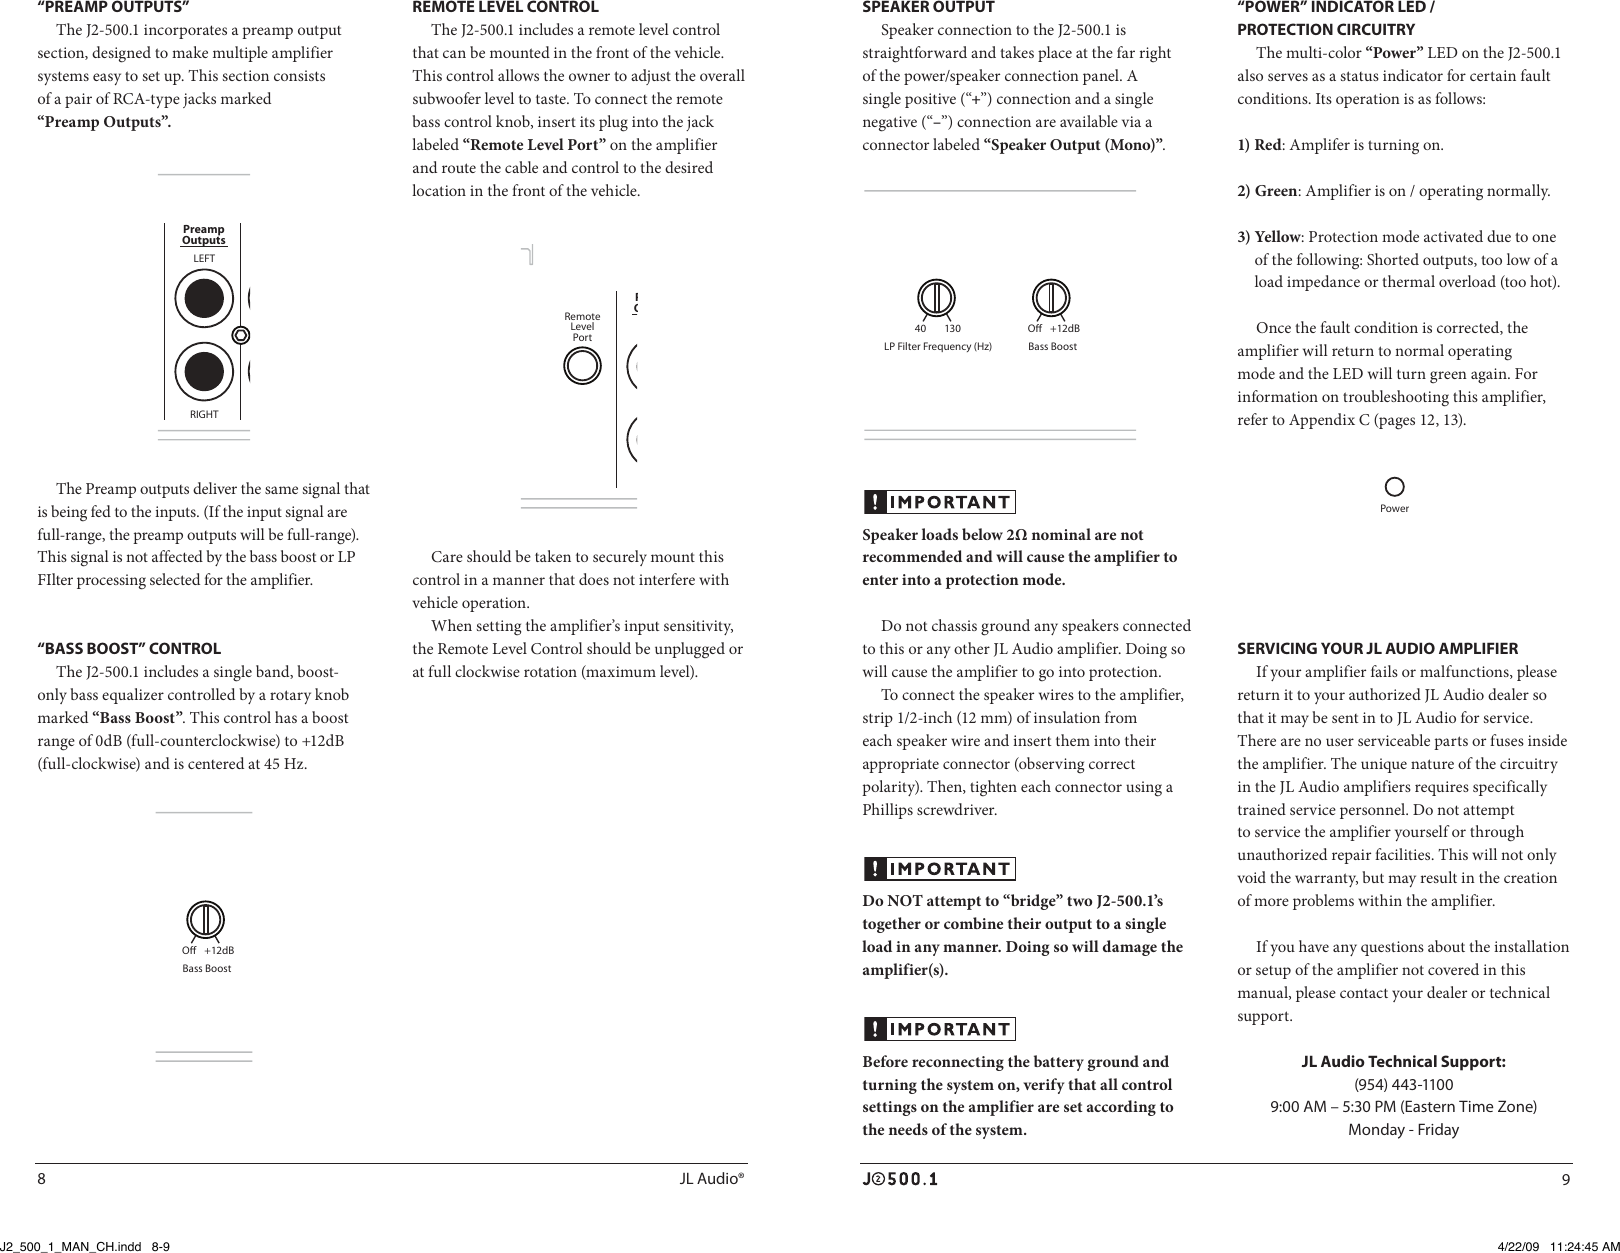 Jl Audio J2500 1 Users Manual 500 Wiring Page 5 Of 9